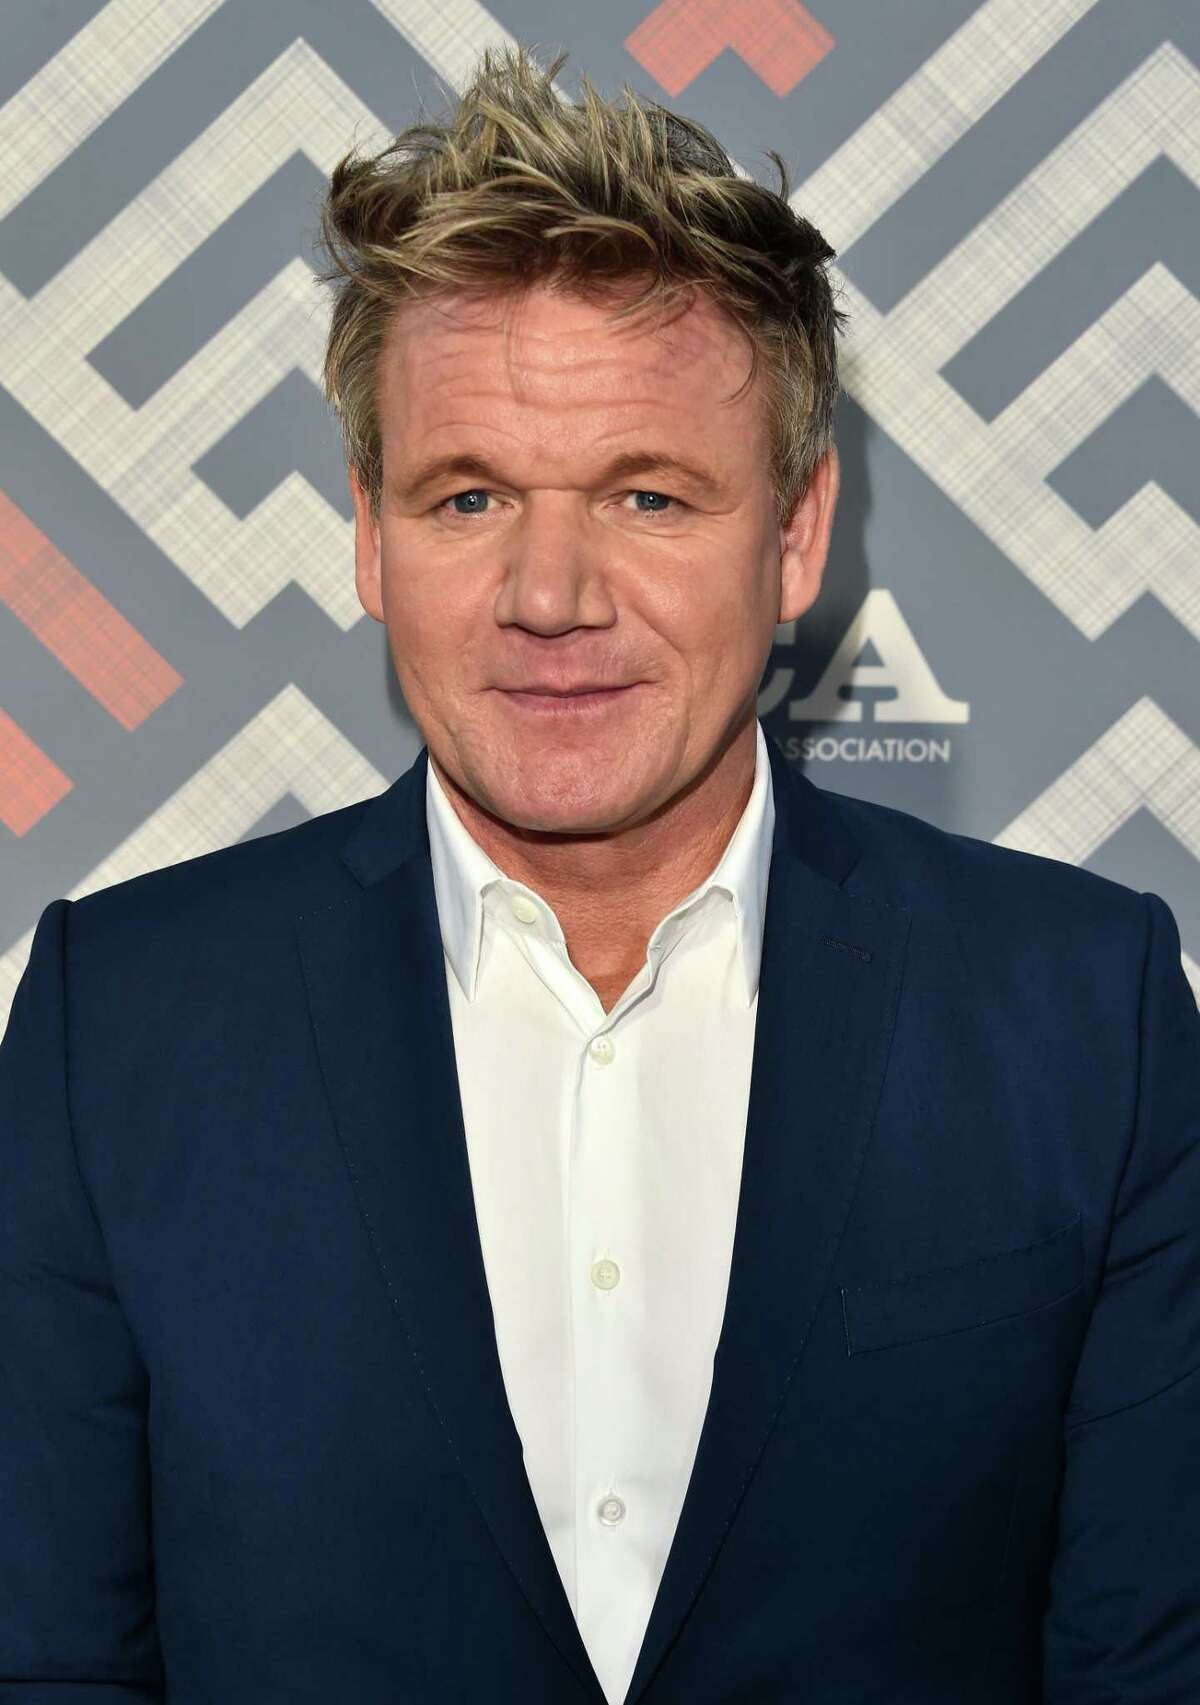 'Hell's Kitchen' host Gordon Ramsay, known for his belligerent TV ire, serves up his first all-stars edition of the Fox show on Sept. 29 - and one veteran chef competing hails from San Antonio.